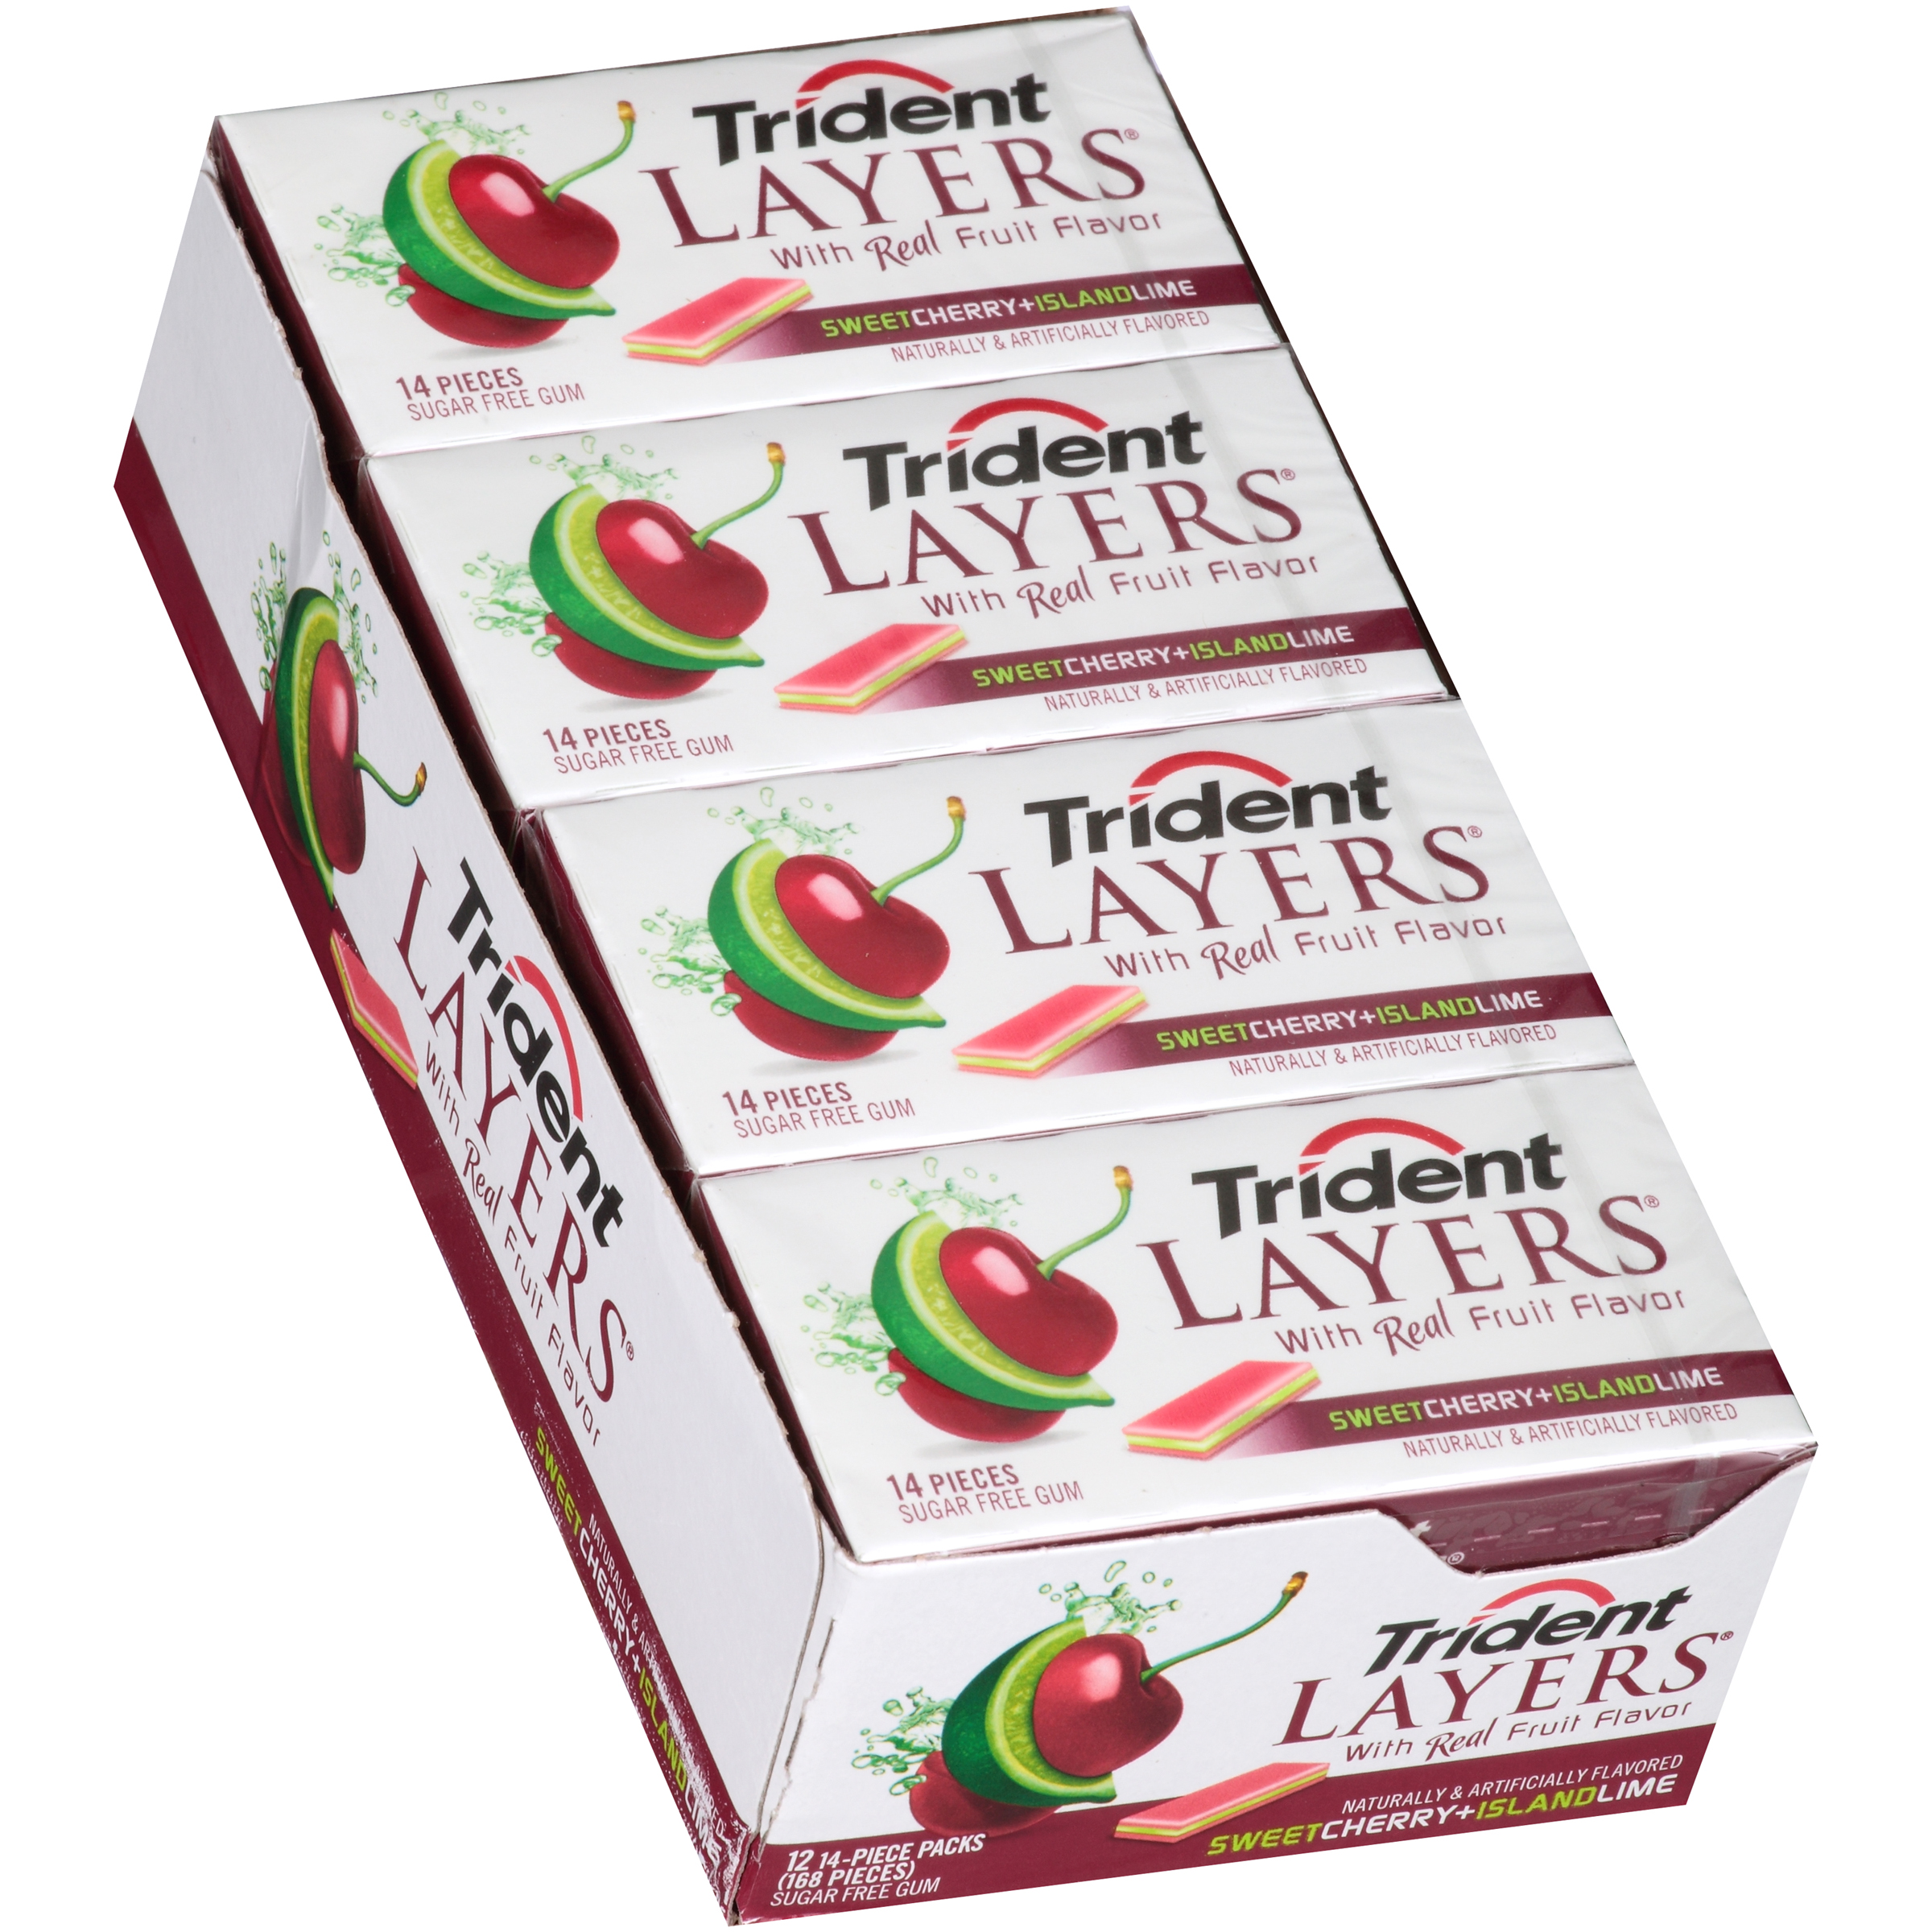 Mondelez Trident Layers Gum, Sweet Cherry And Island Lime, 14 Piece Pack, 12 Ct